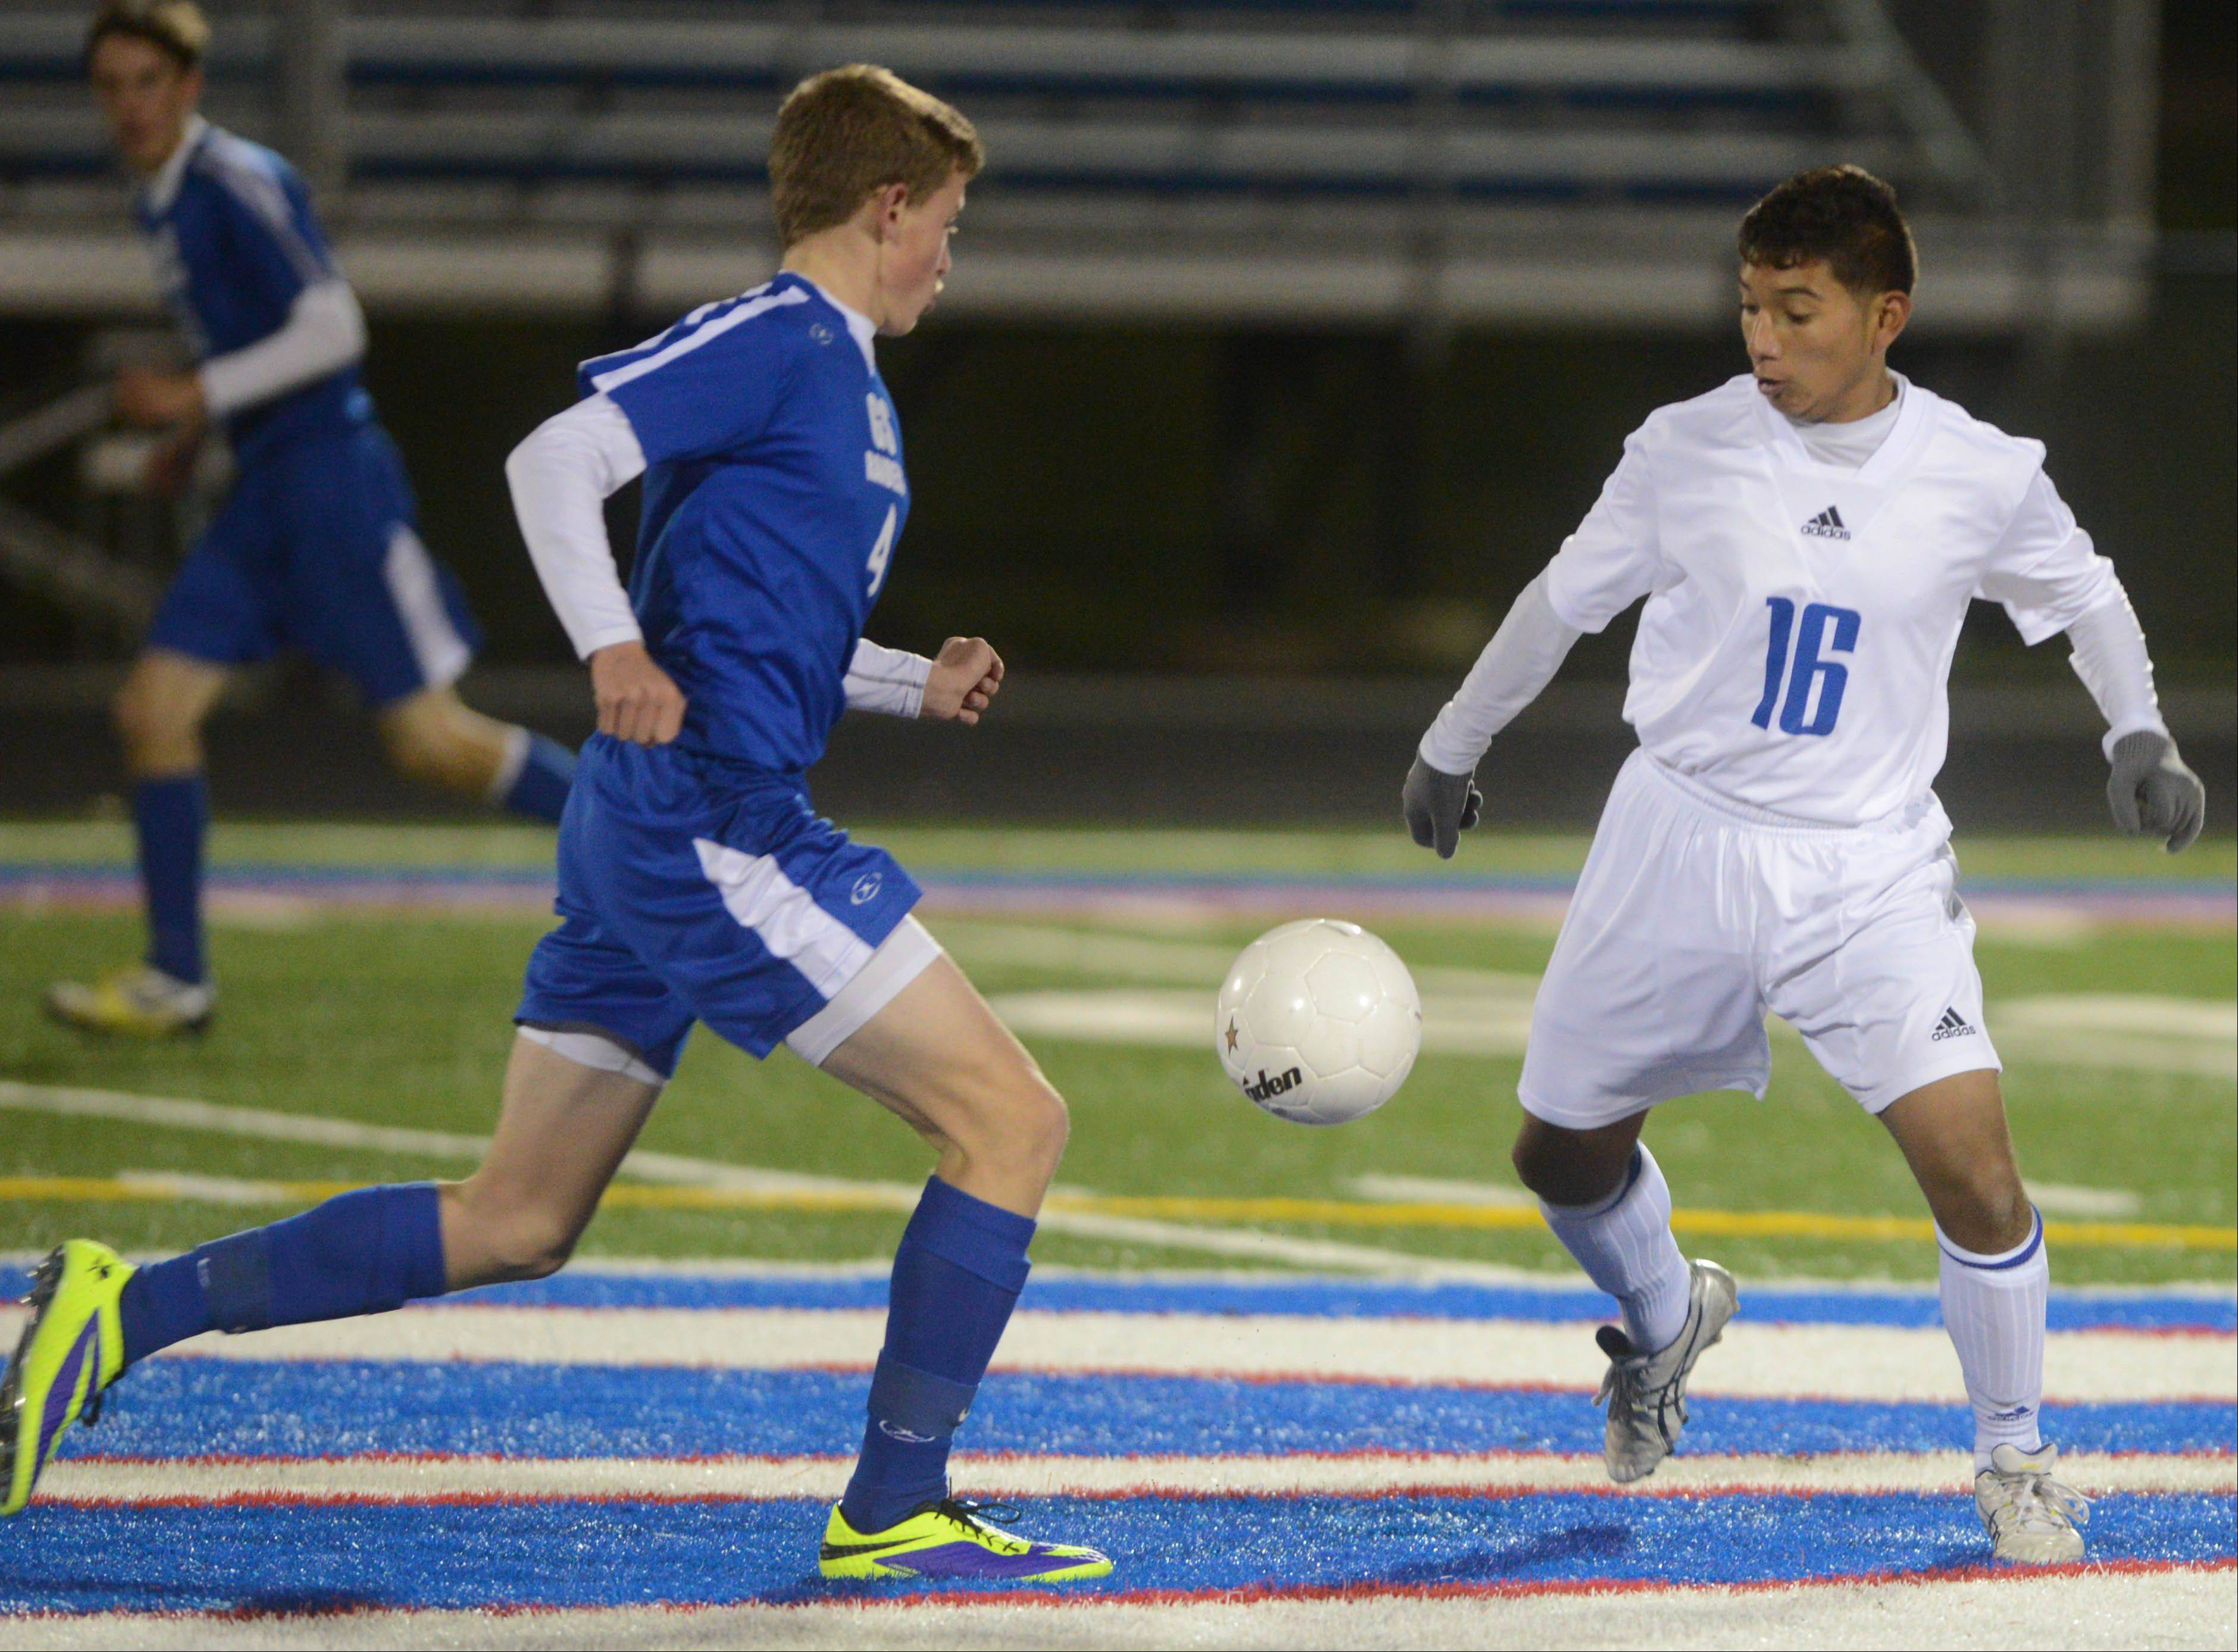 Chris Enright,left, of Glenbad South and Kevin Cortes of Fenton vie for the ball during the Fenton at Glenbard South boys soccer Class 2A regional semifinal game.